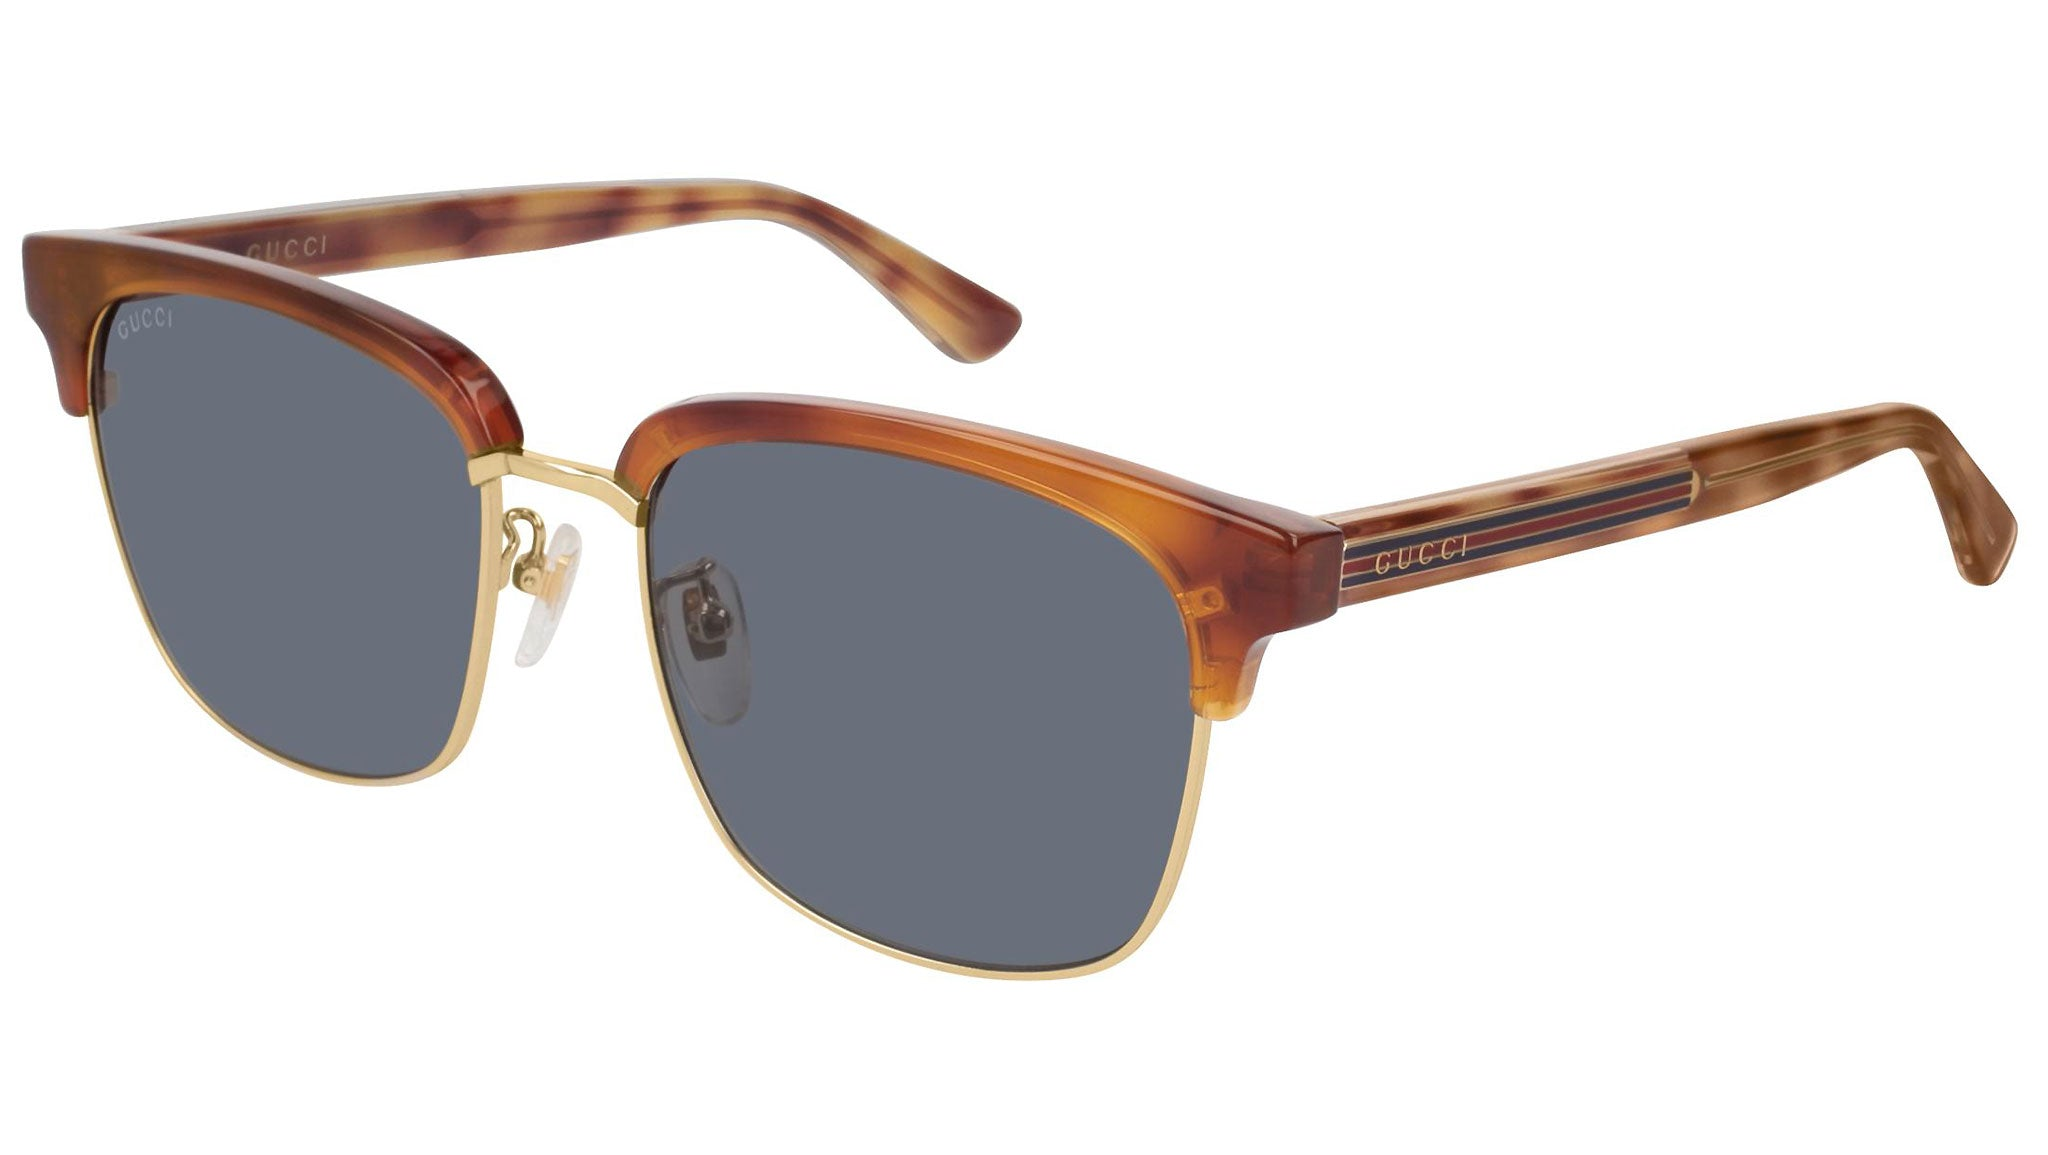 GG0382S gold havana and blue